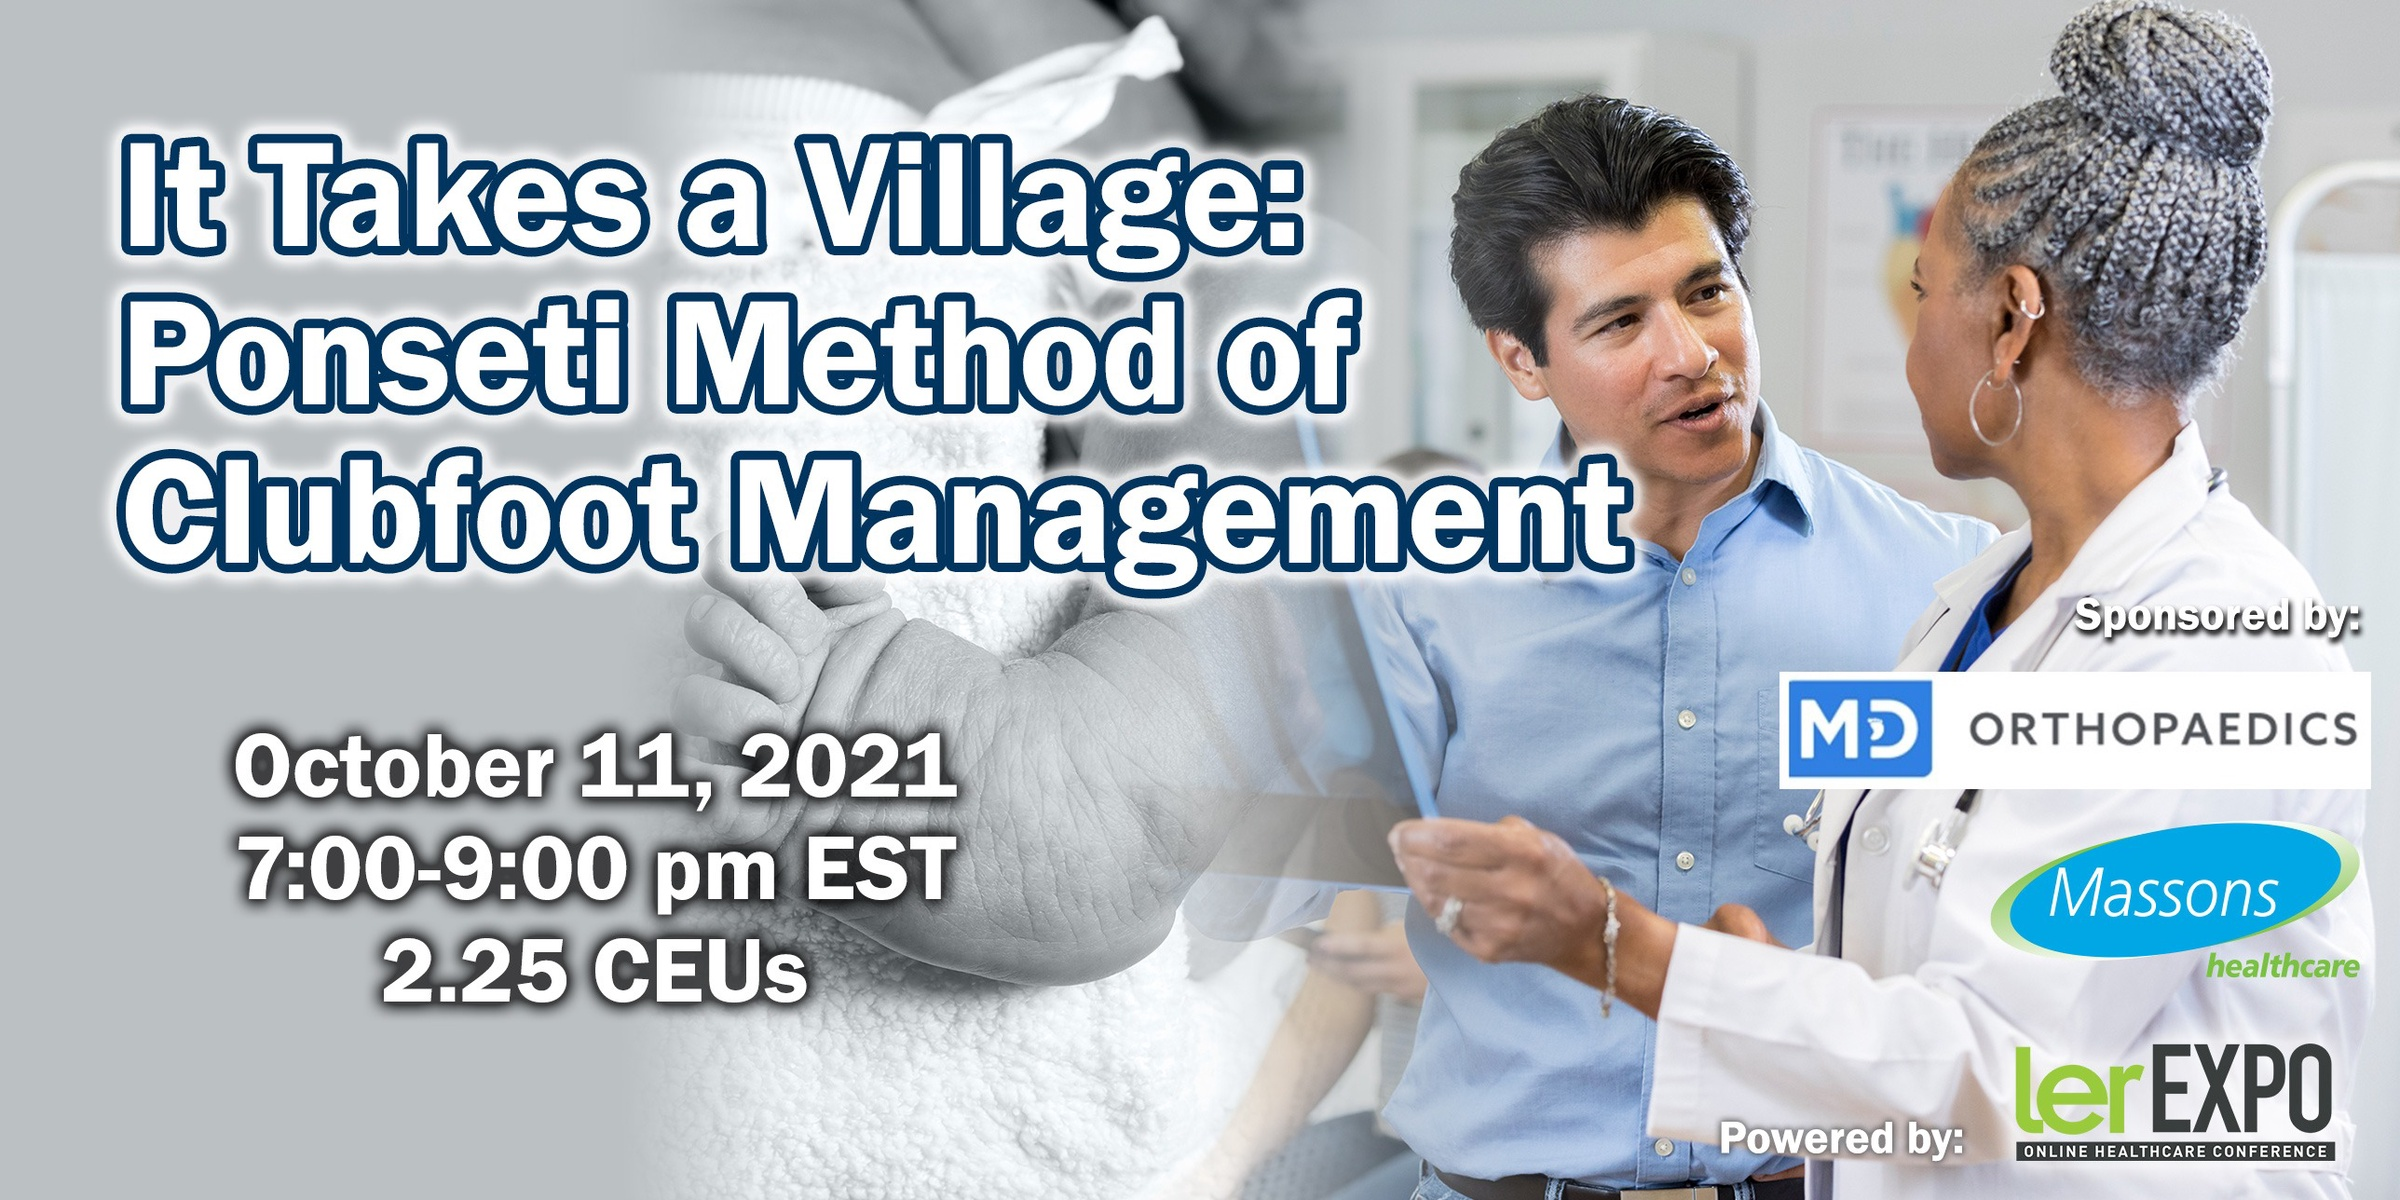 It Takes a Village: Ponseti Method Management of Clubfoot